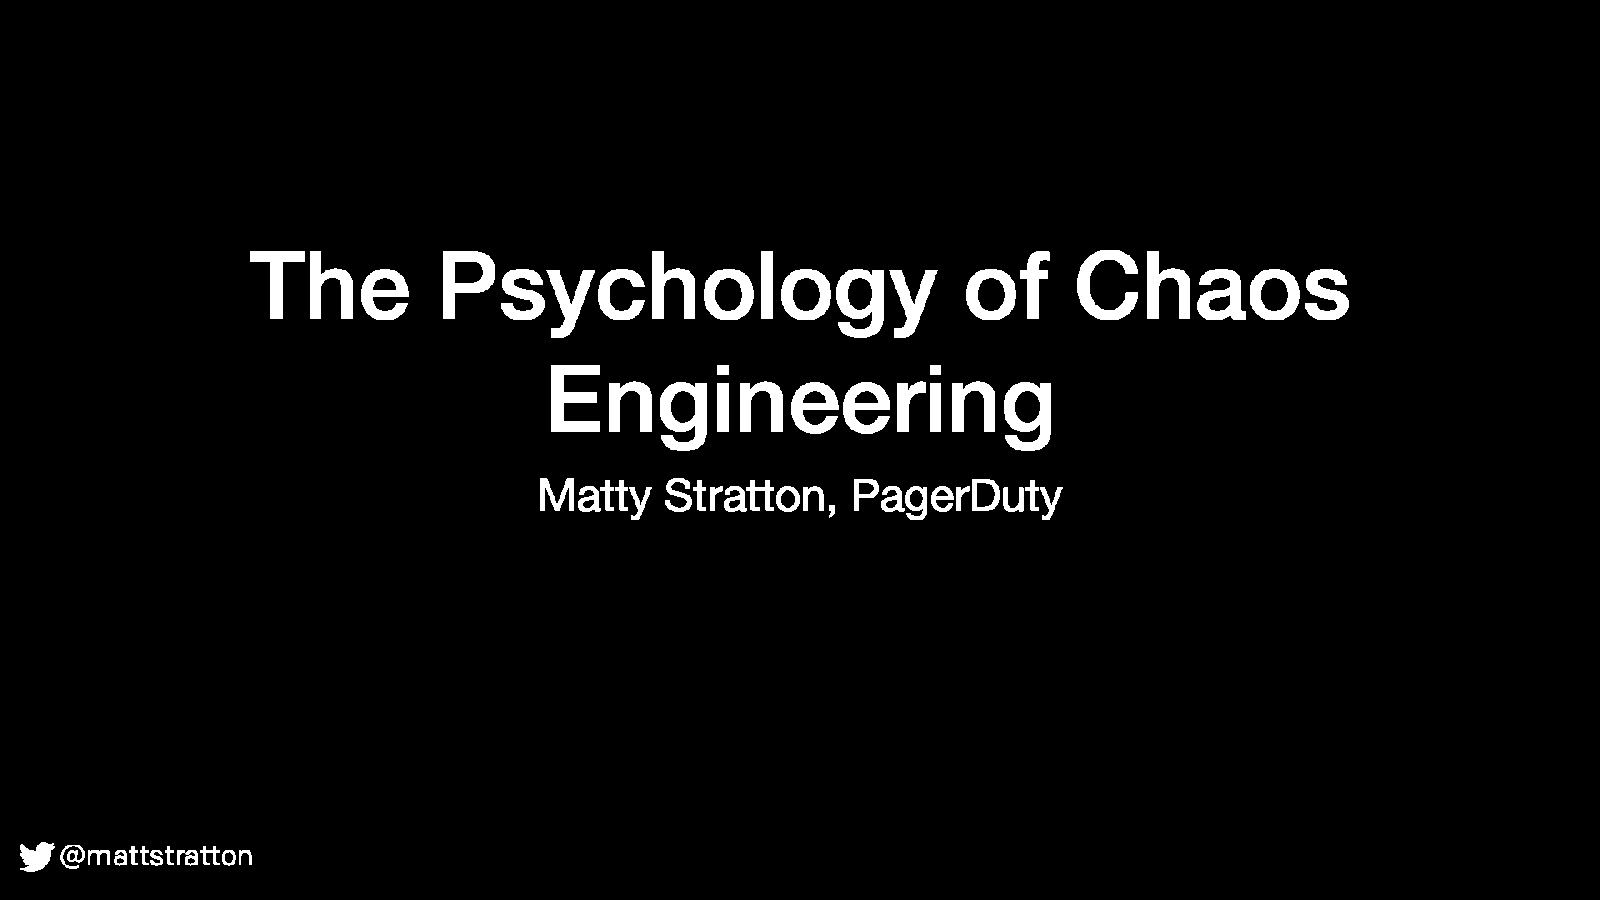 The Psychology of Chaos Engineering